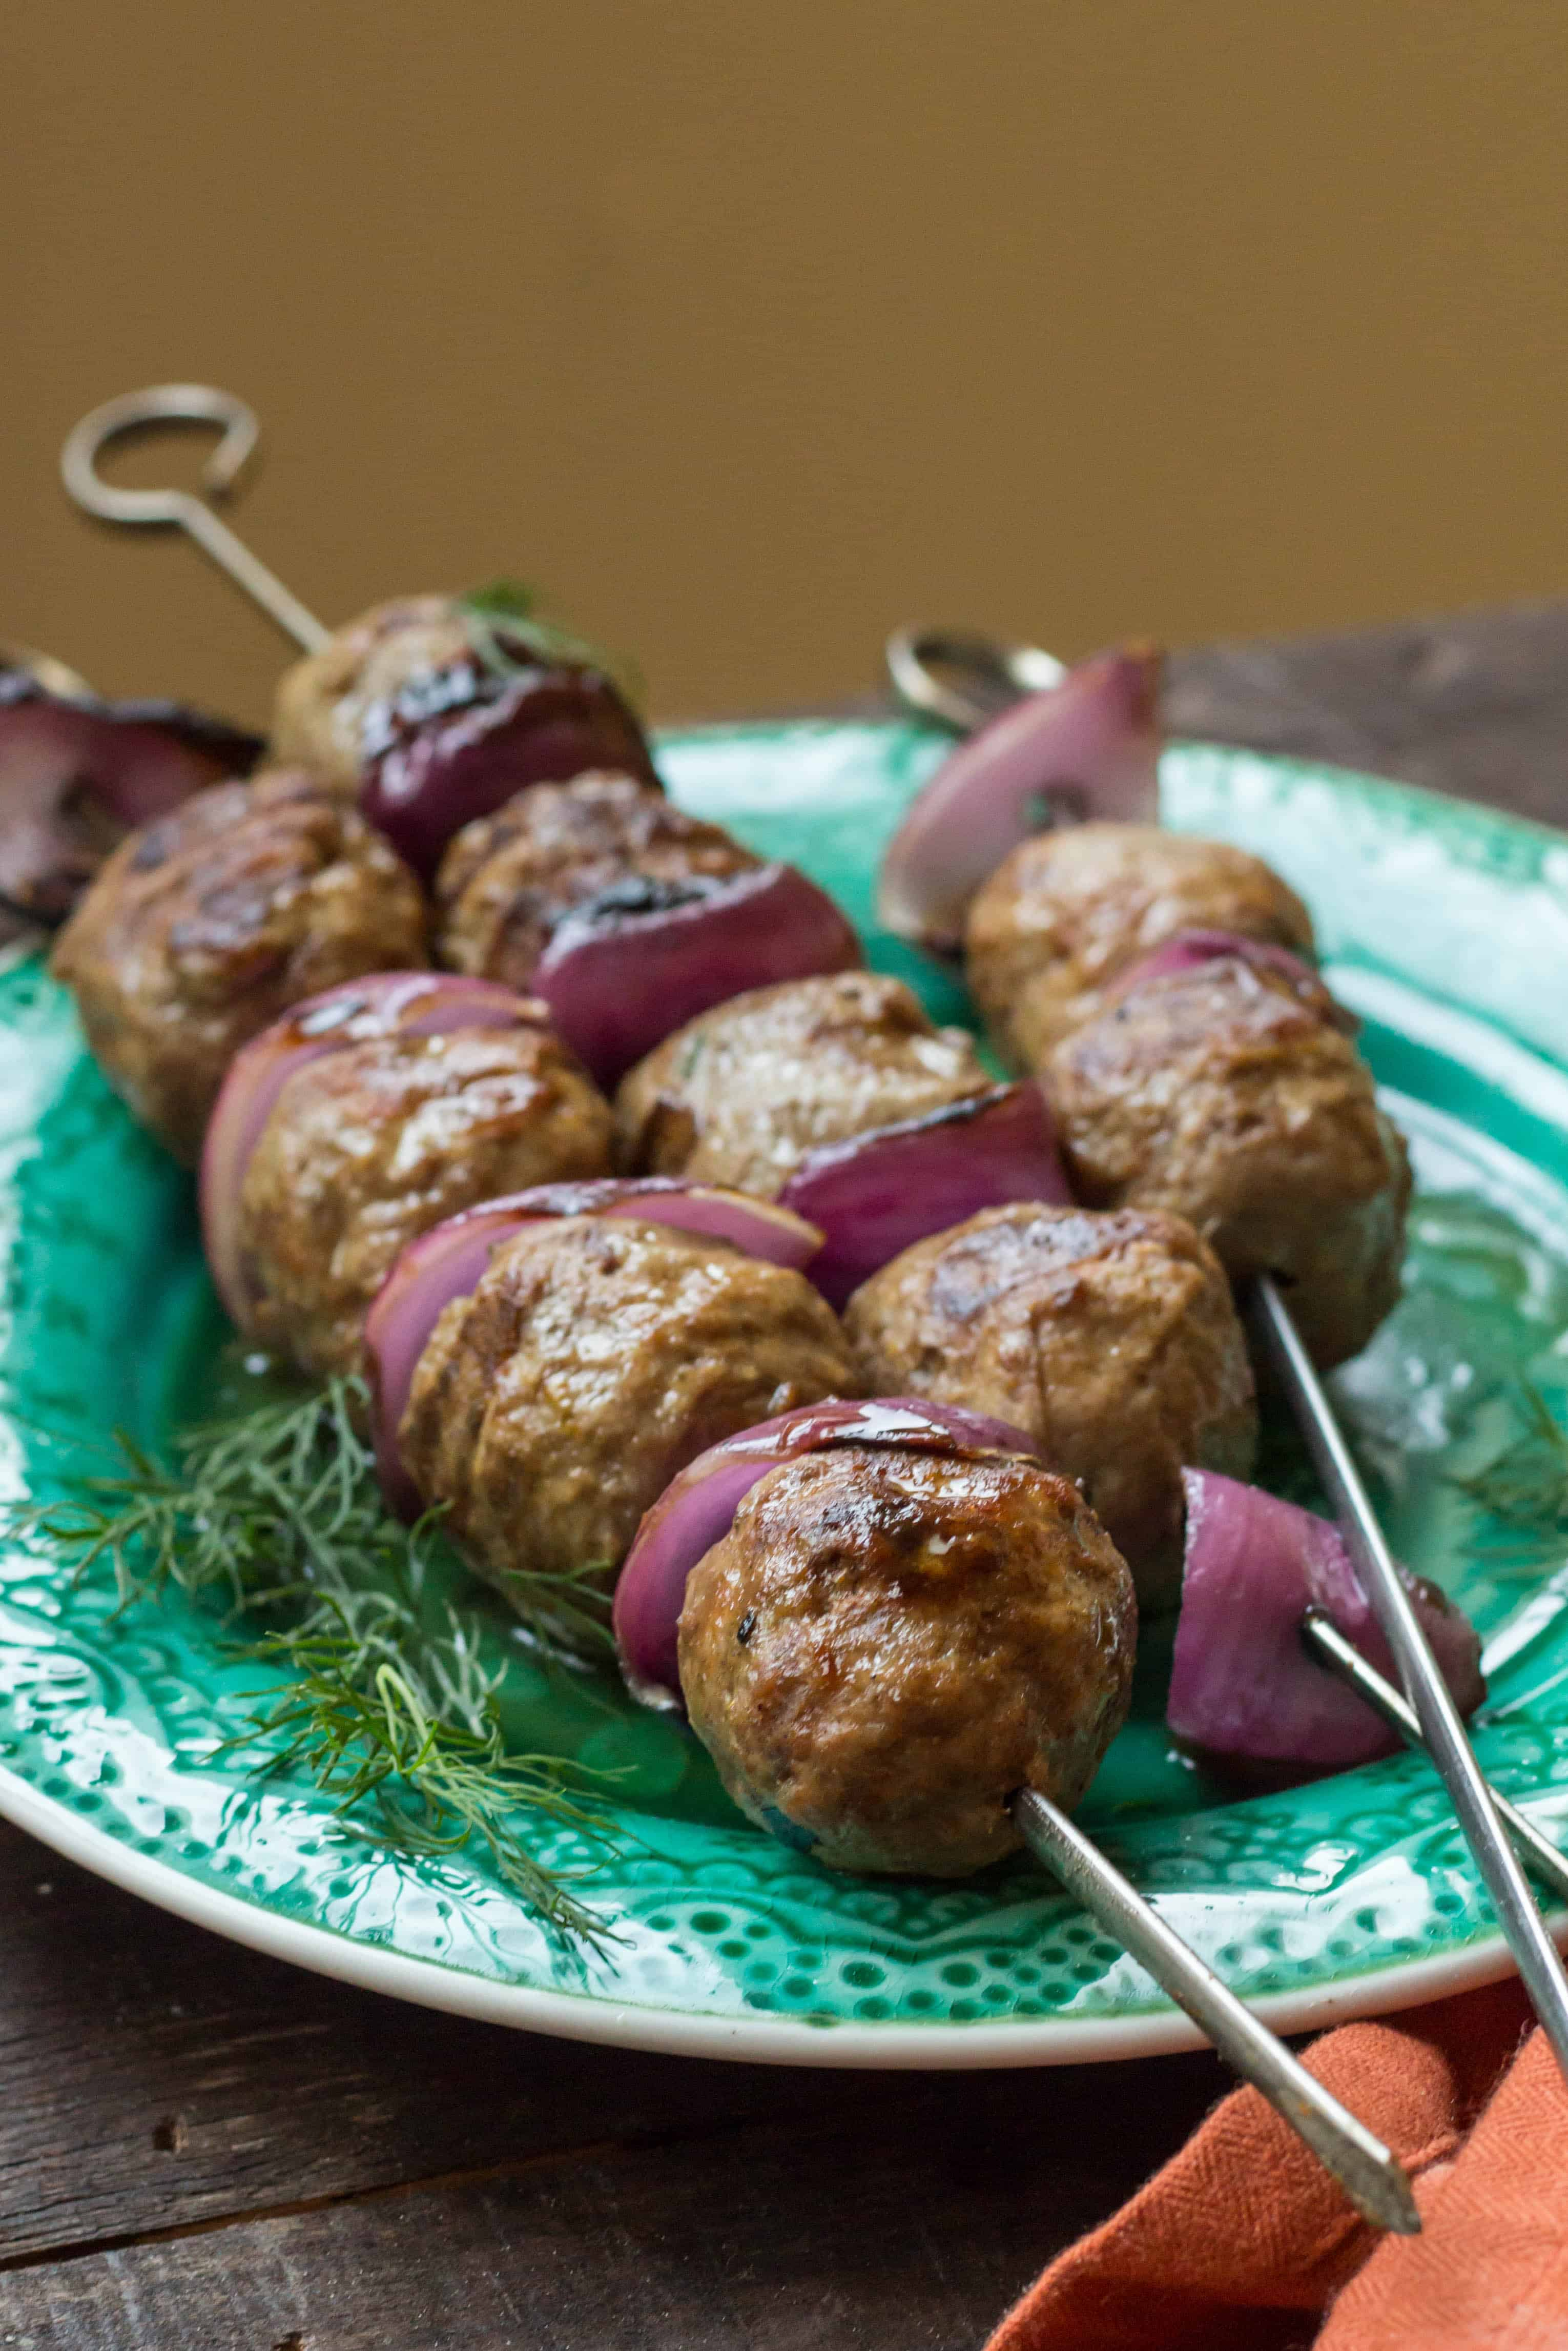 Lamb meatballs and red onion slices on metal skewers on a green plate.